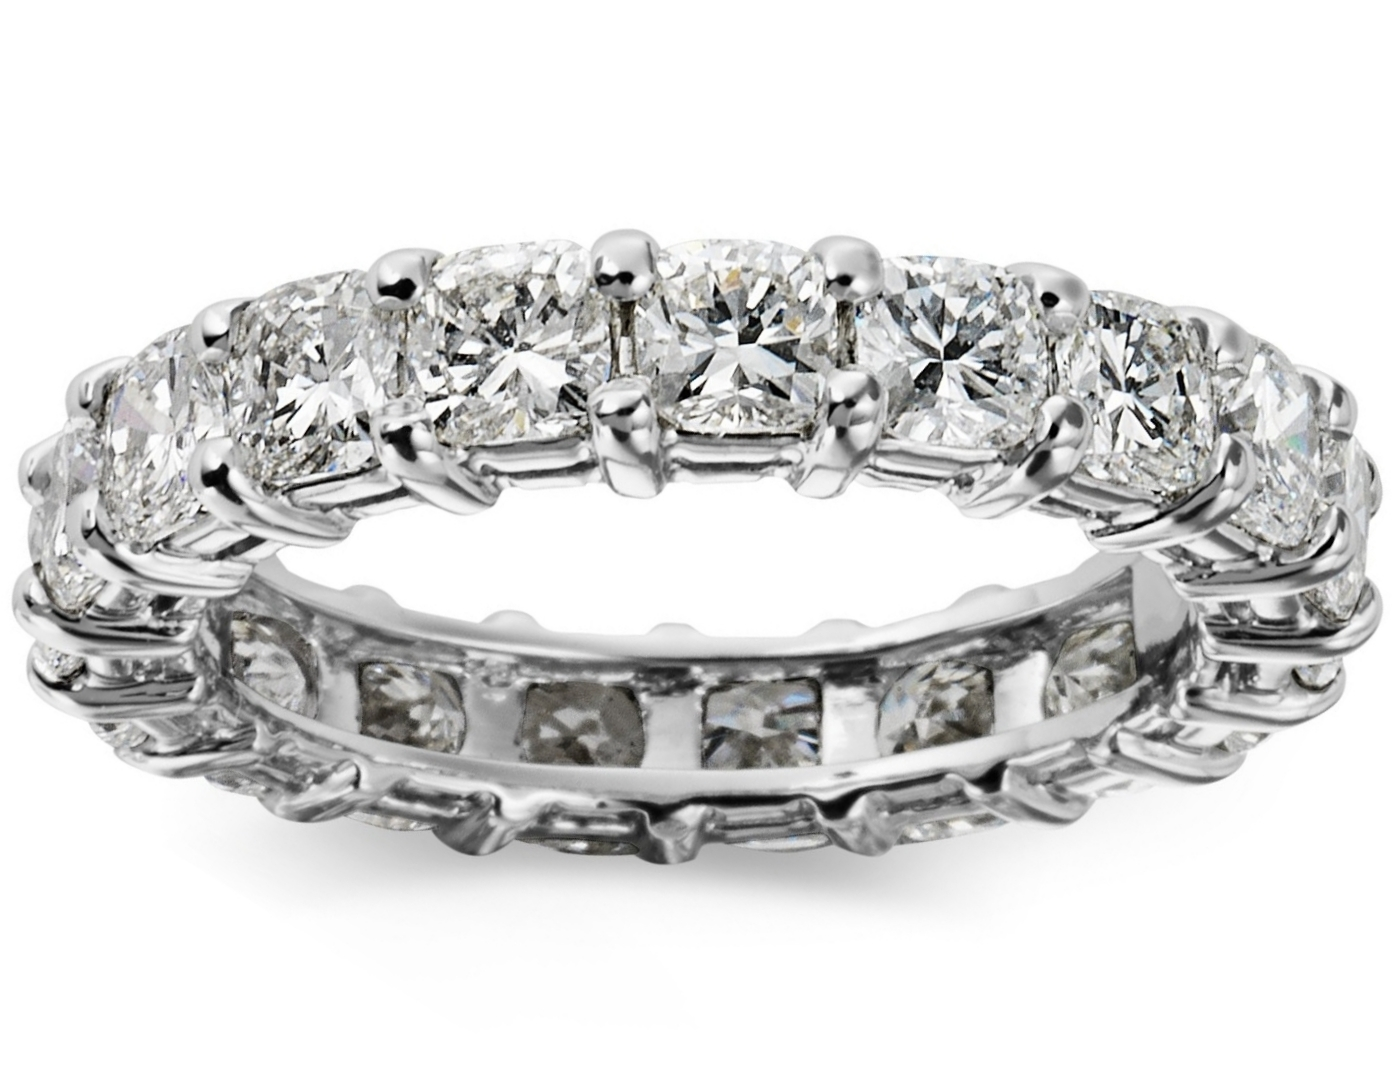 Cushion Cut Diamond Eternity Ring 2.6 carat tw. in Platinum